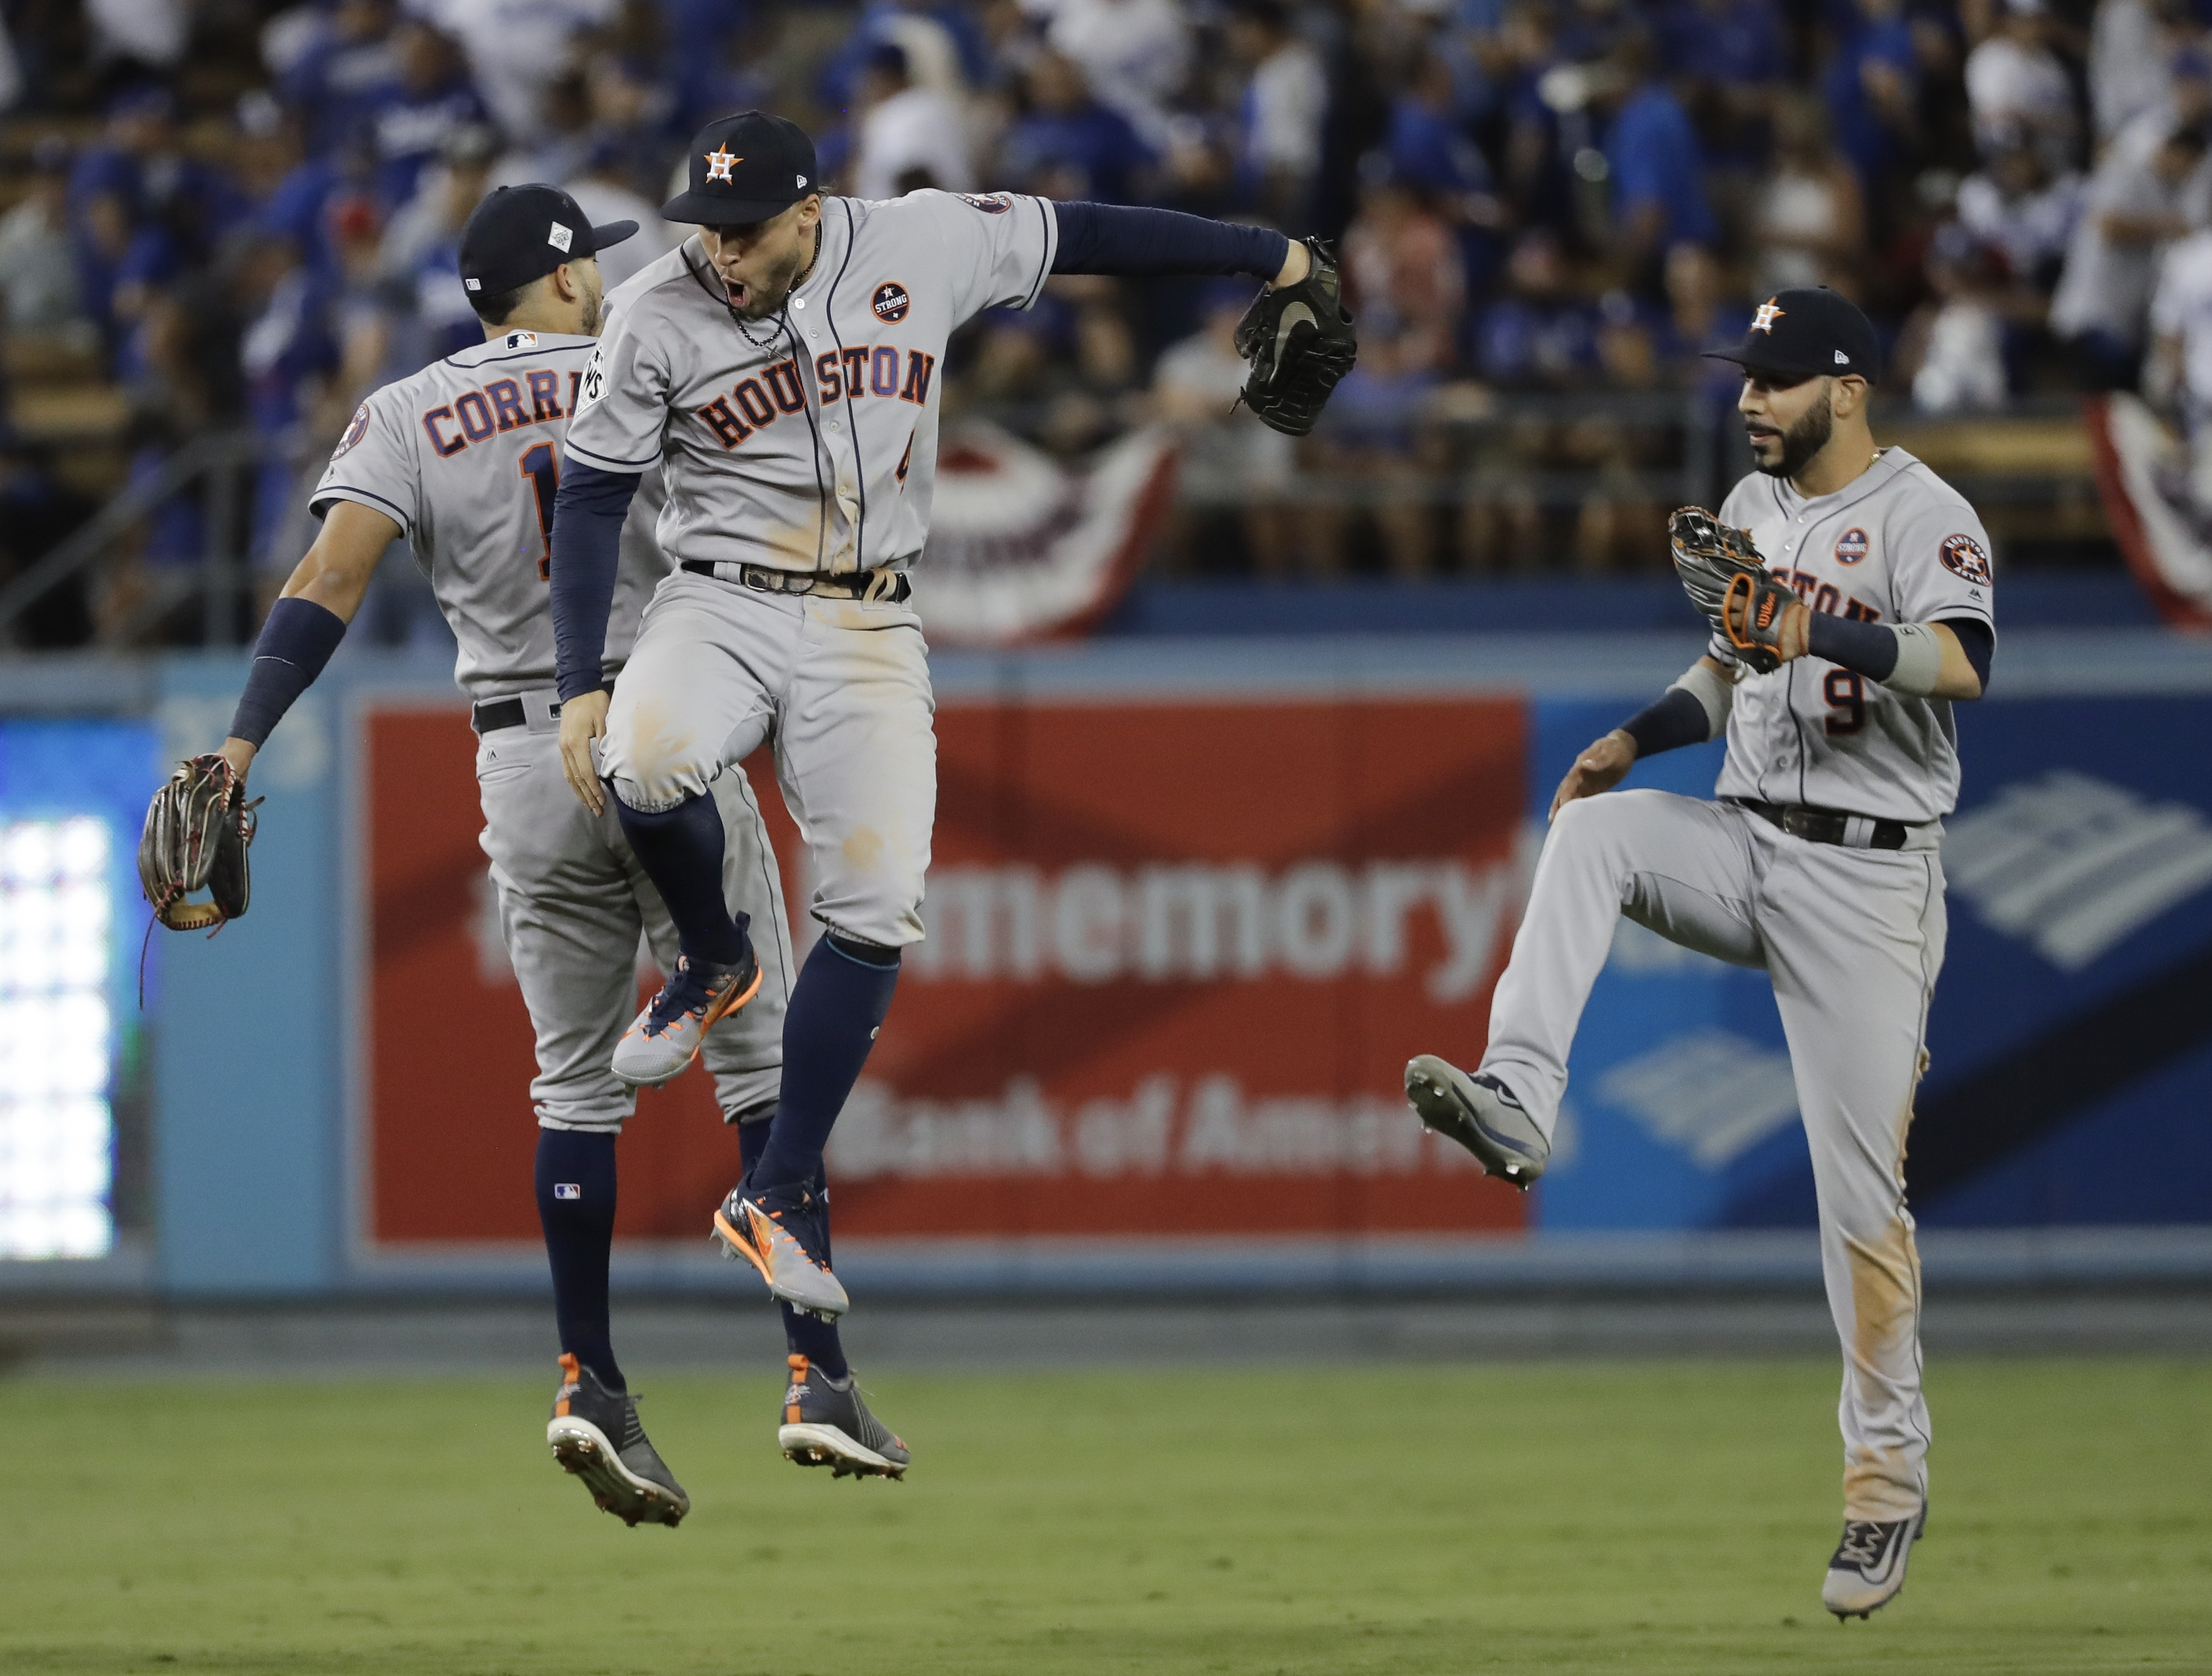 Houston Astros' Carlos Correa, George Springer one Marwin Gonzalez celebrate after Game 2 of baseball's World Series against the Los Angeles Dodgers Wednesday, Oct. 25, 2017, in Los Angeles. The Astros won 7-6 to tie the series at 1-1. (AP Photo/David J. Phillip)